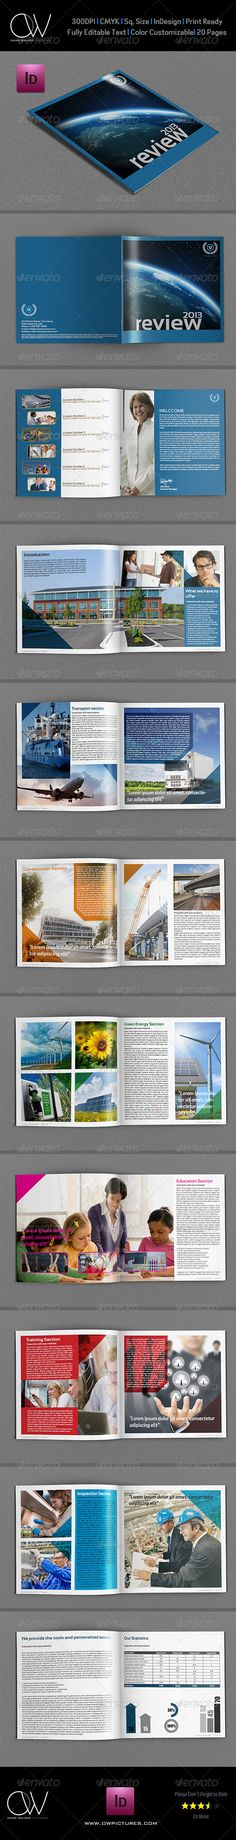 Company Brochure Template Vol.7 - 20 Pages